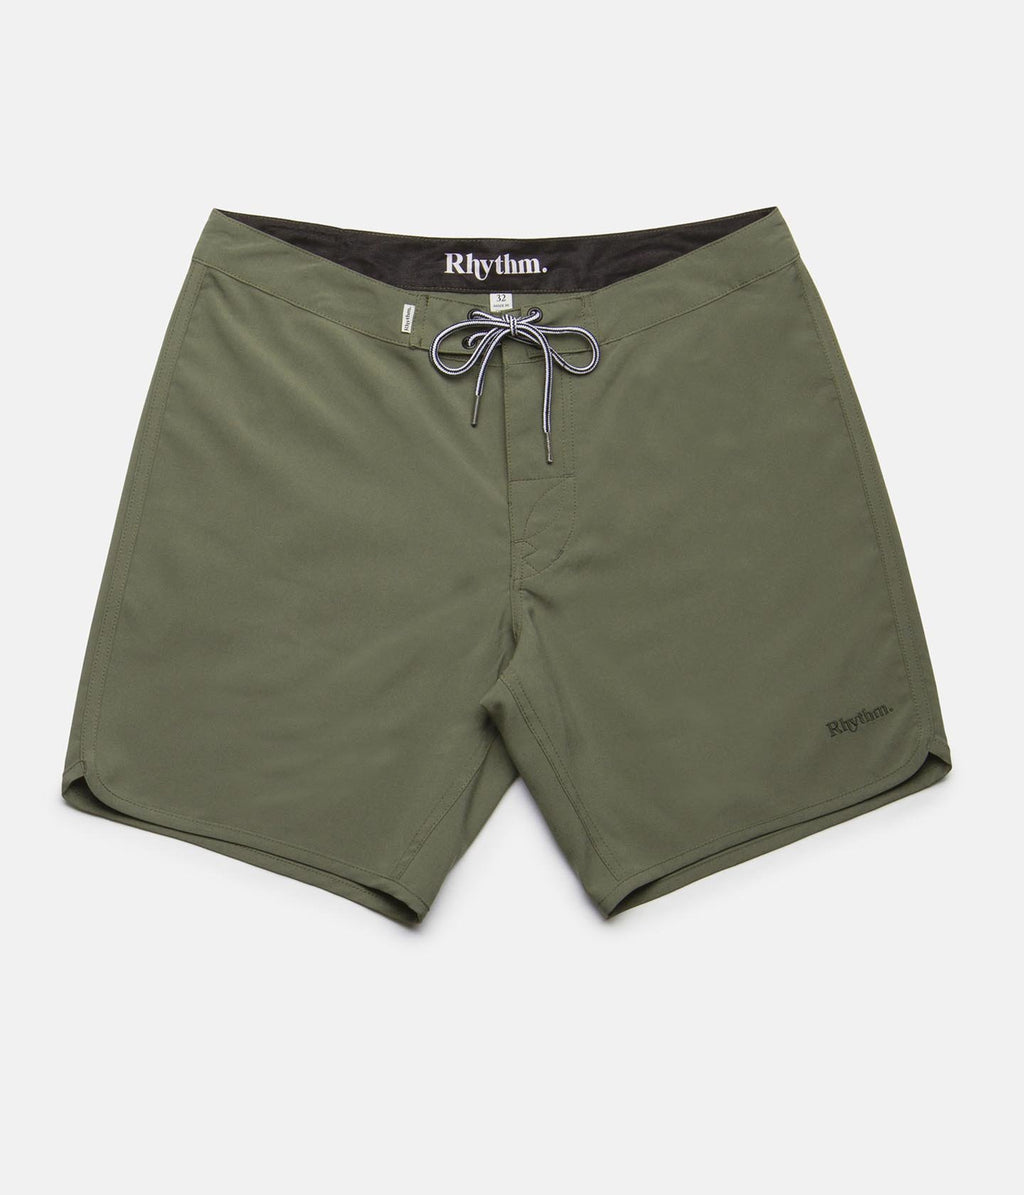 Rhythm Black Label Retro Trunk (Vintage Olive)